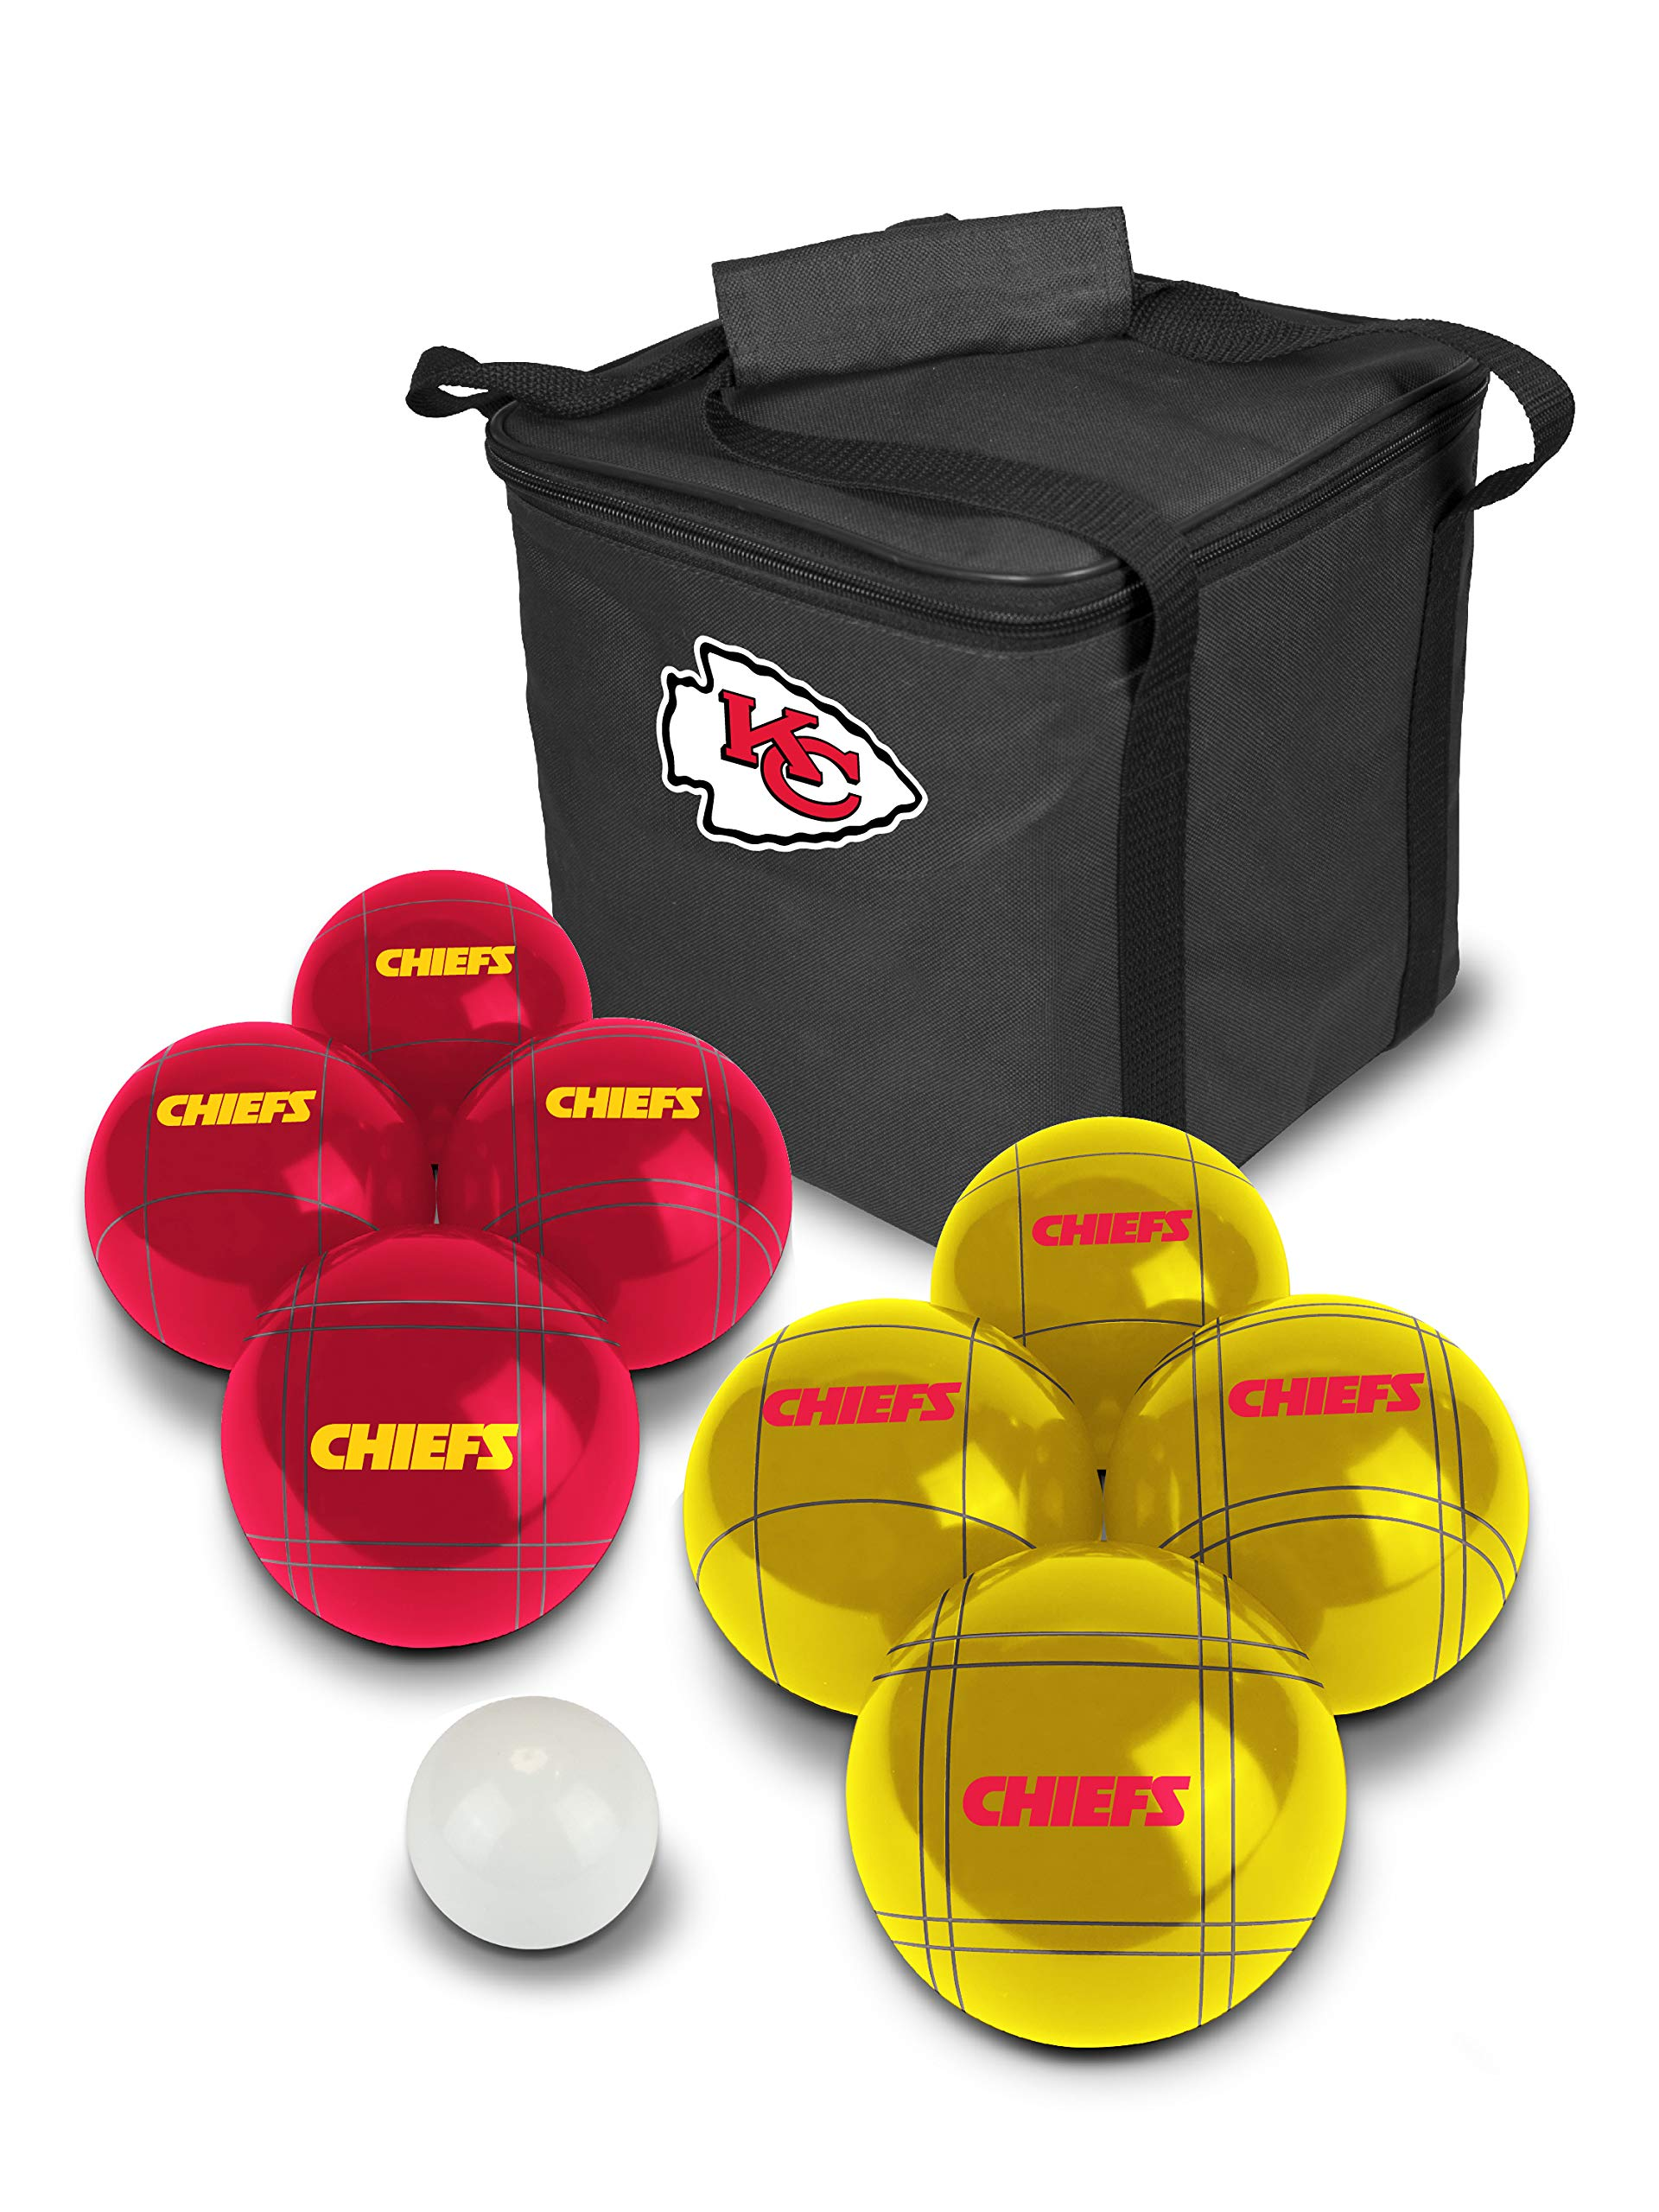 PROLINE NFL Kansas City Chiefs Bocce Ball Set by PROLINE (Image #1)